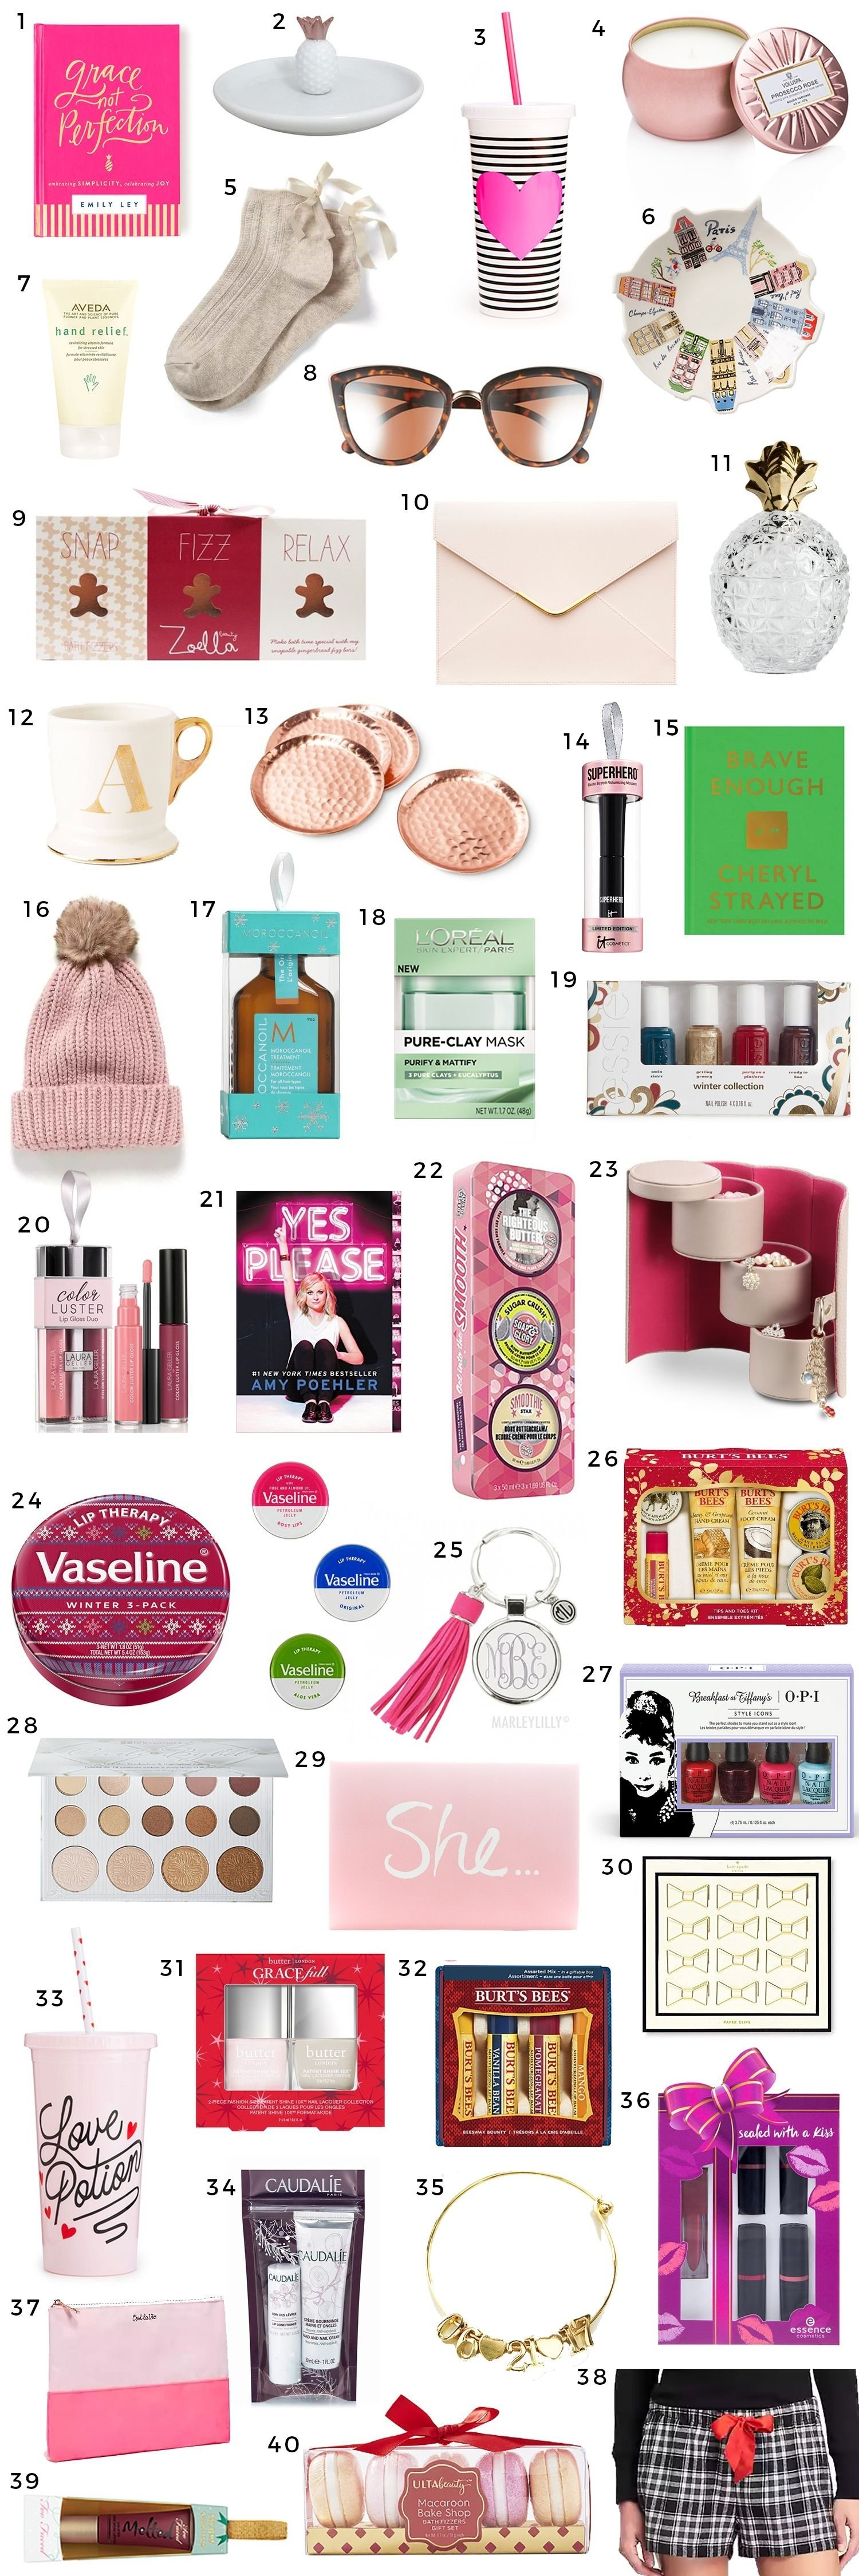 10 Unique Gift Ideas For Women Over 40 the best christmas gift ideas for women under 15 christmas gifts